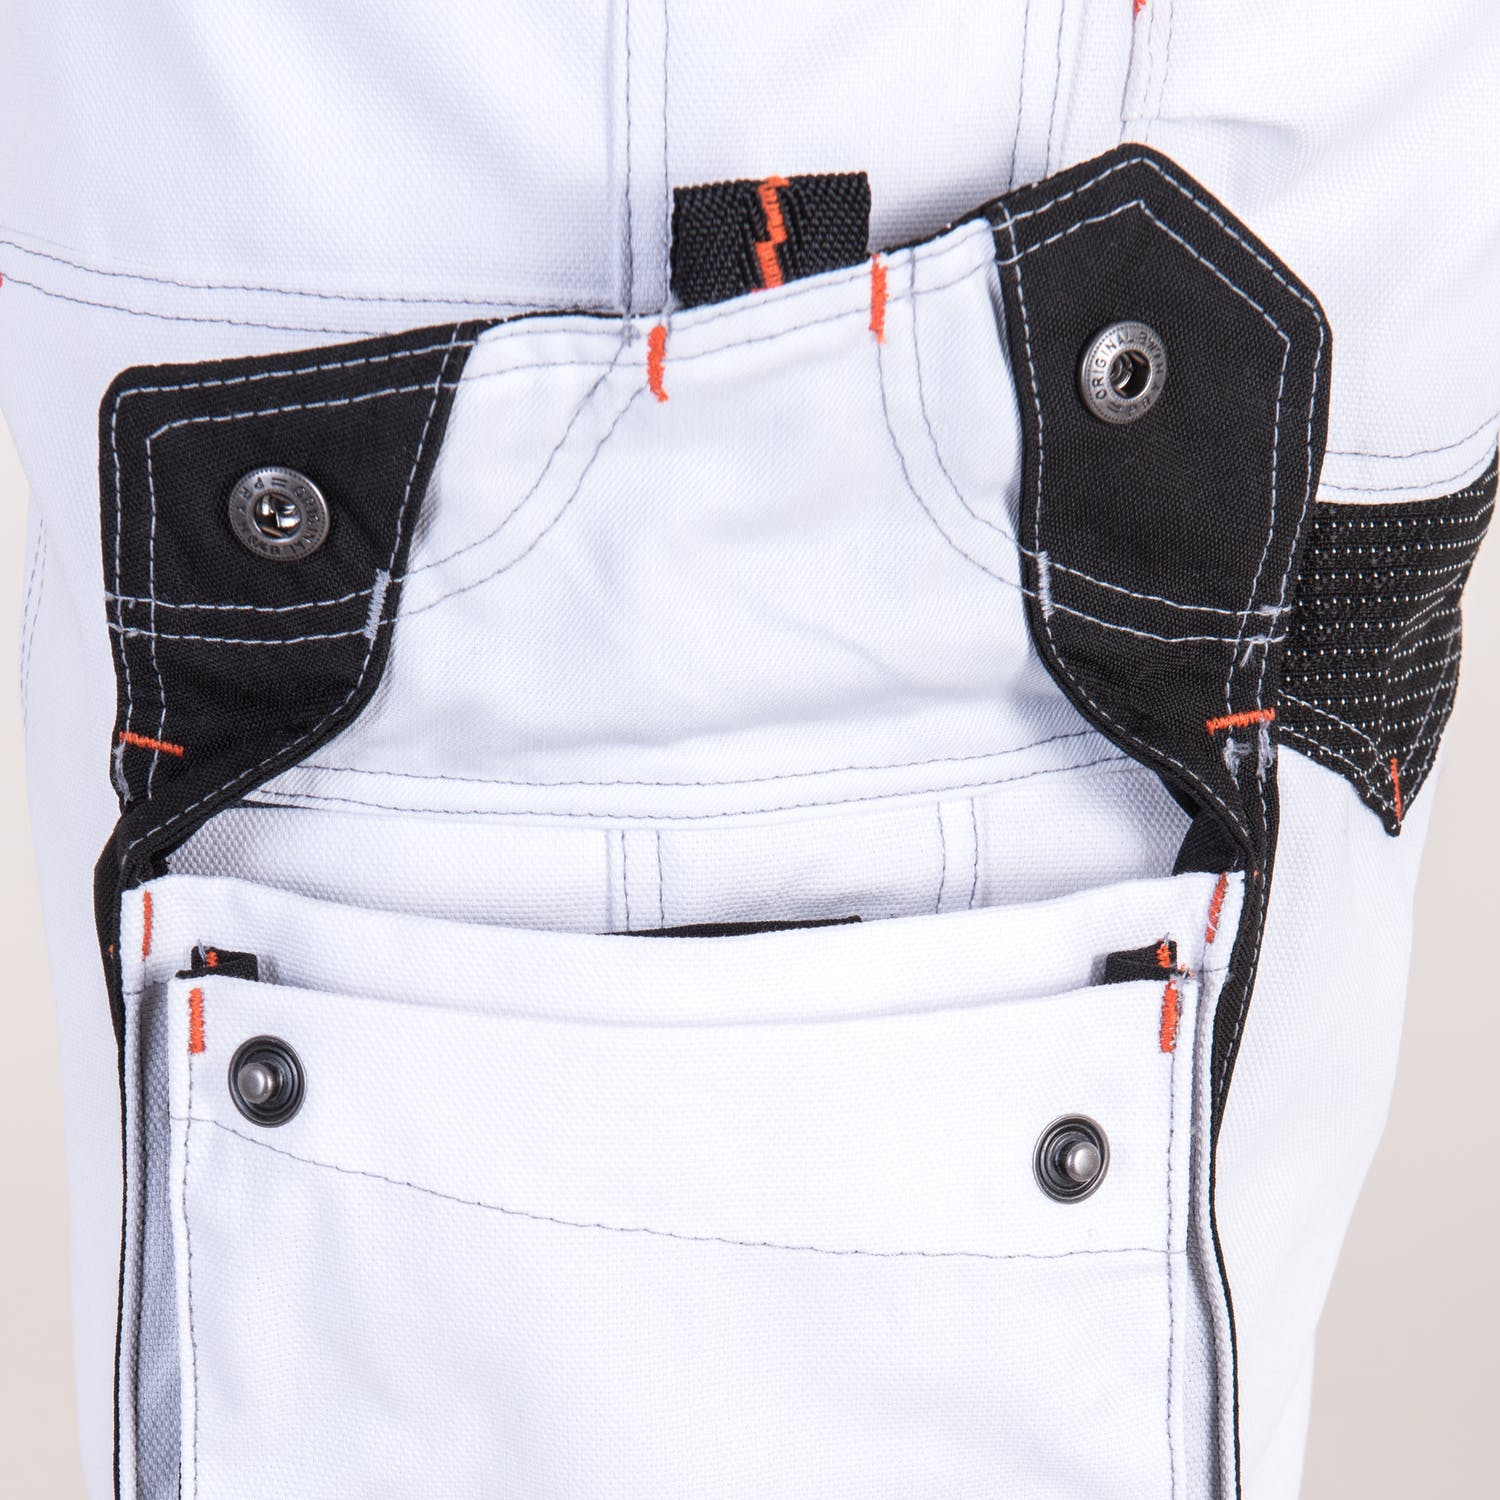 MYCORE FORCE Bundhose m. Kniepolstertaschen